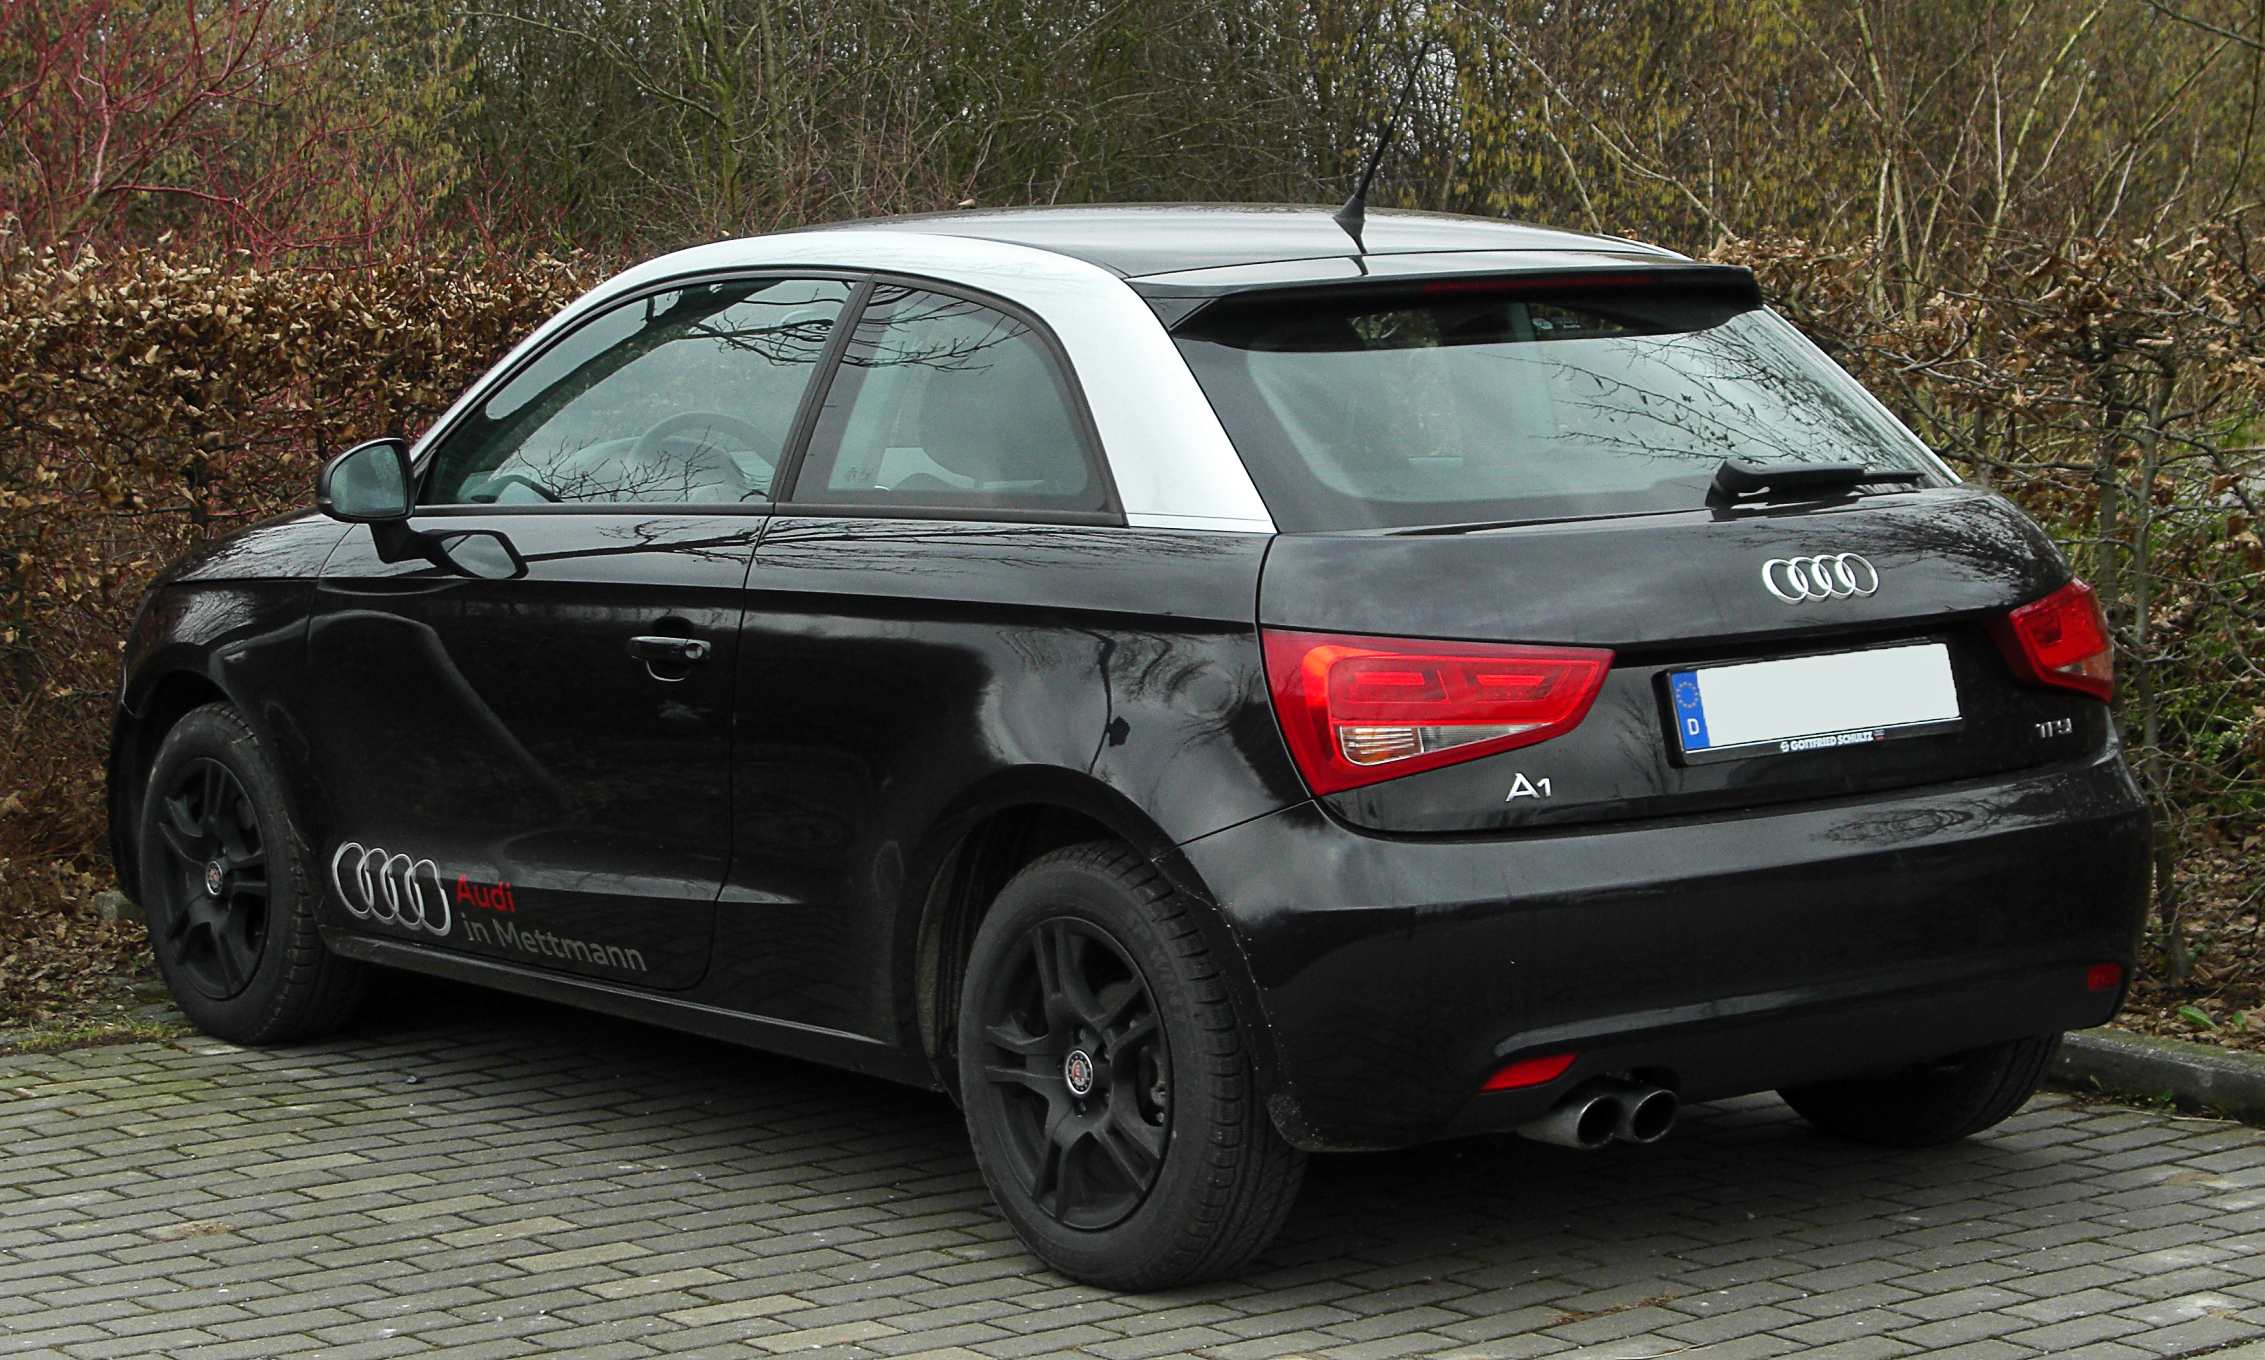 File Audi A1 1 4 Tfsi Ambition Rear 20110206 W 252 Lfrath Jpg